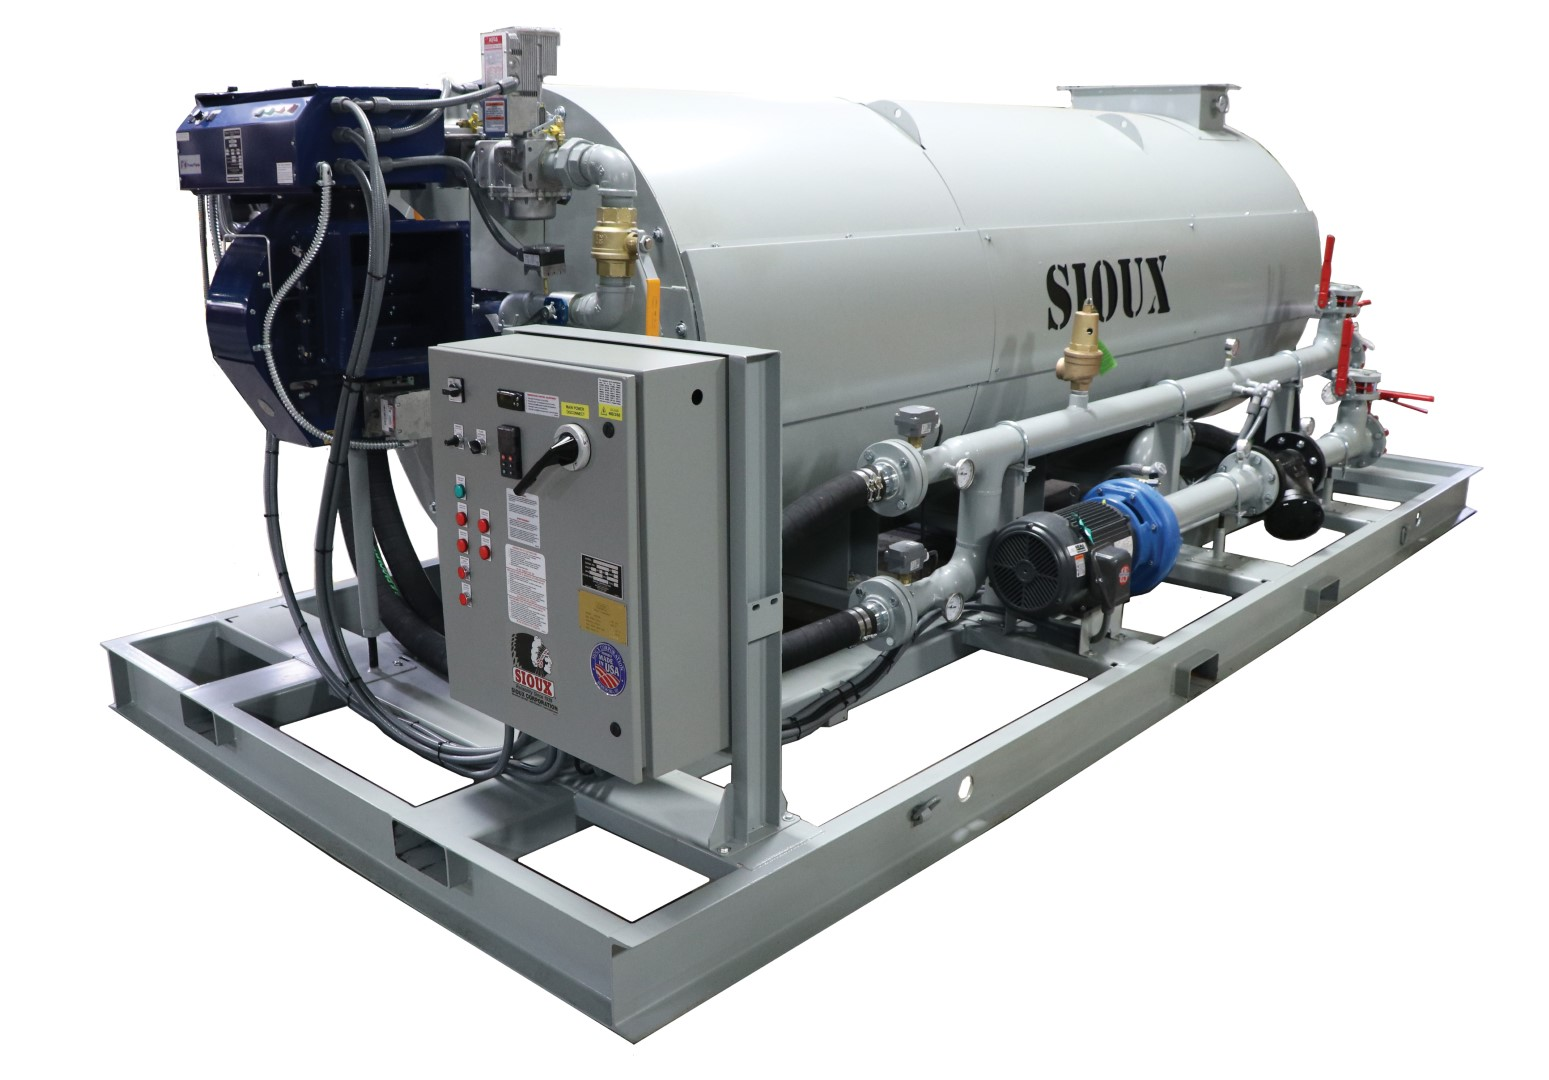 Sioux HM-5 Gas Water Heater